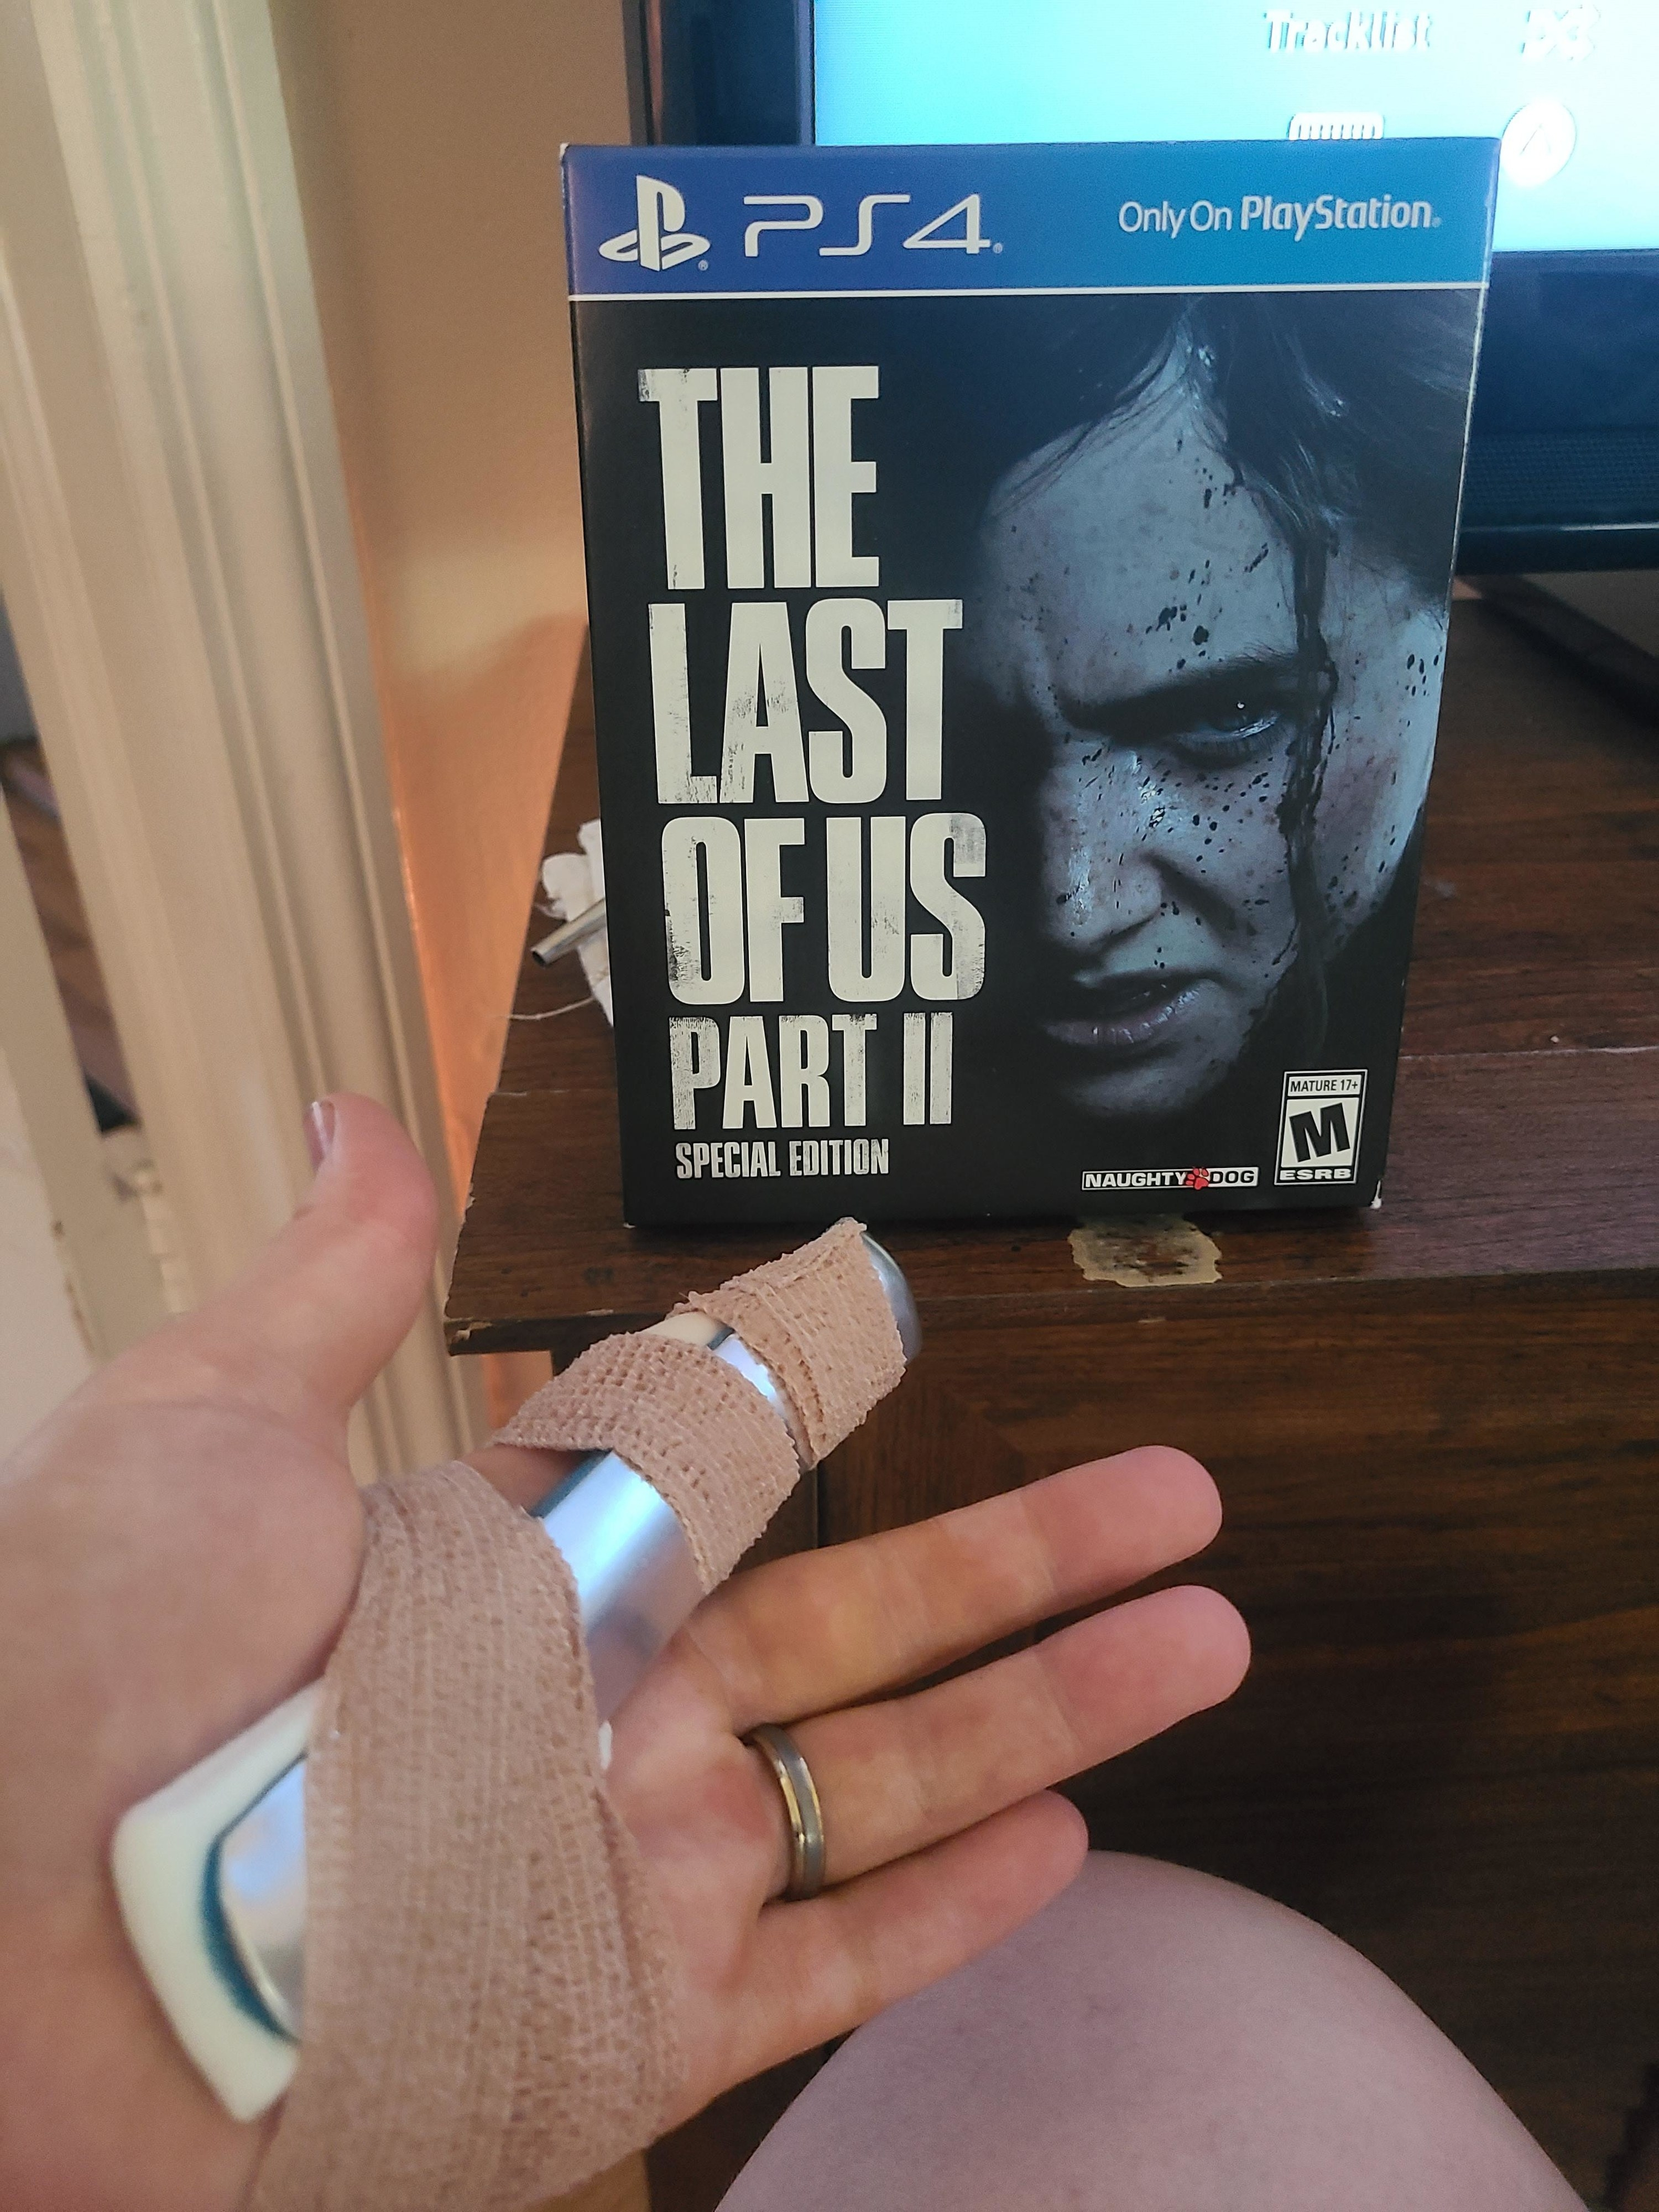 A finger in a splint posed in front of a video game case.